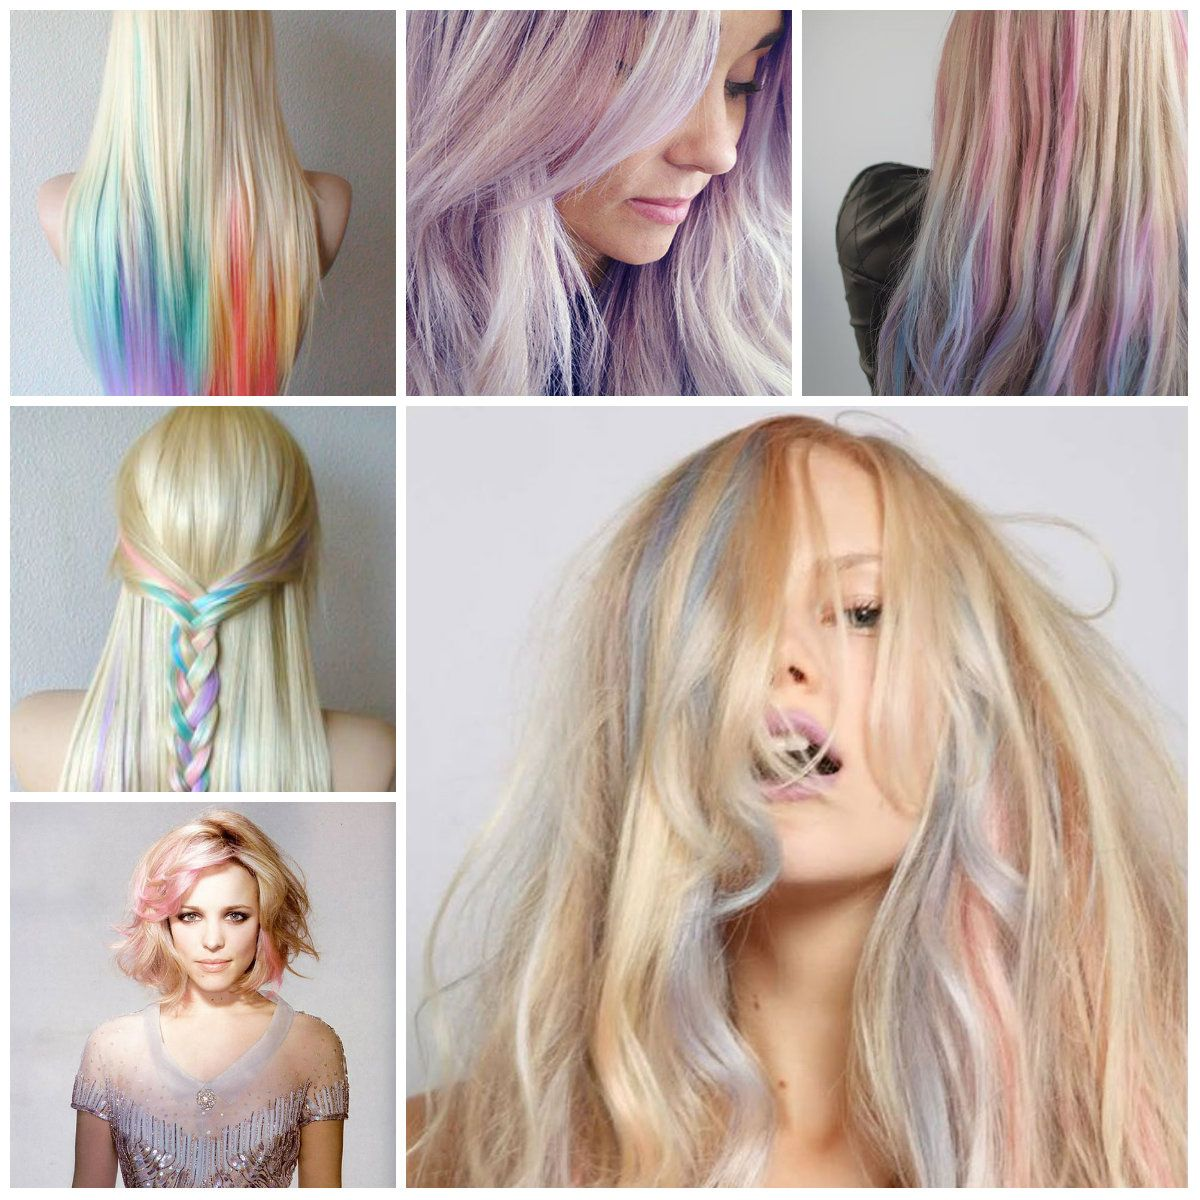 Pin By Annora On Hair Color Inspiration Pinterest Hair Blonde